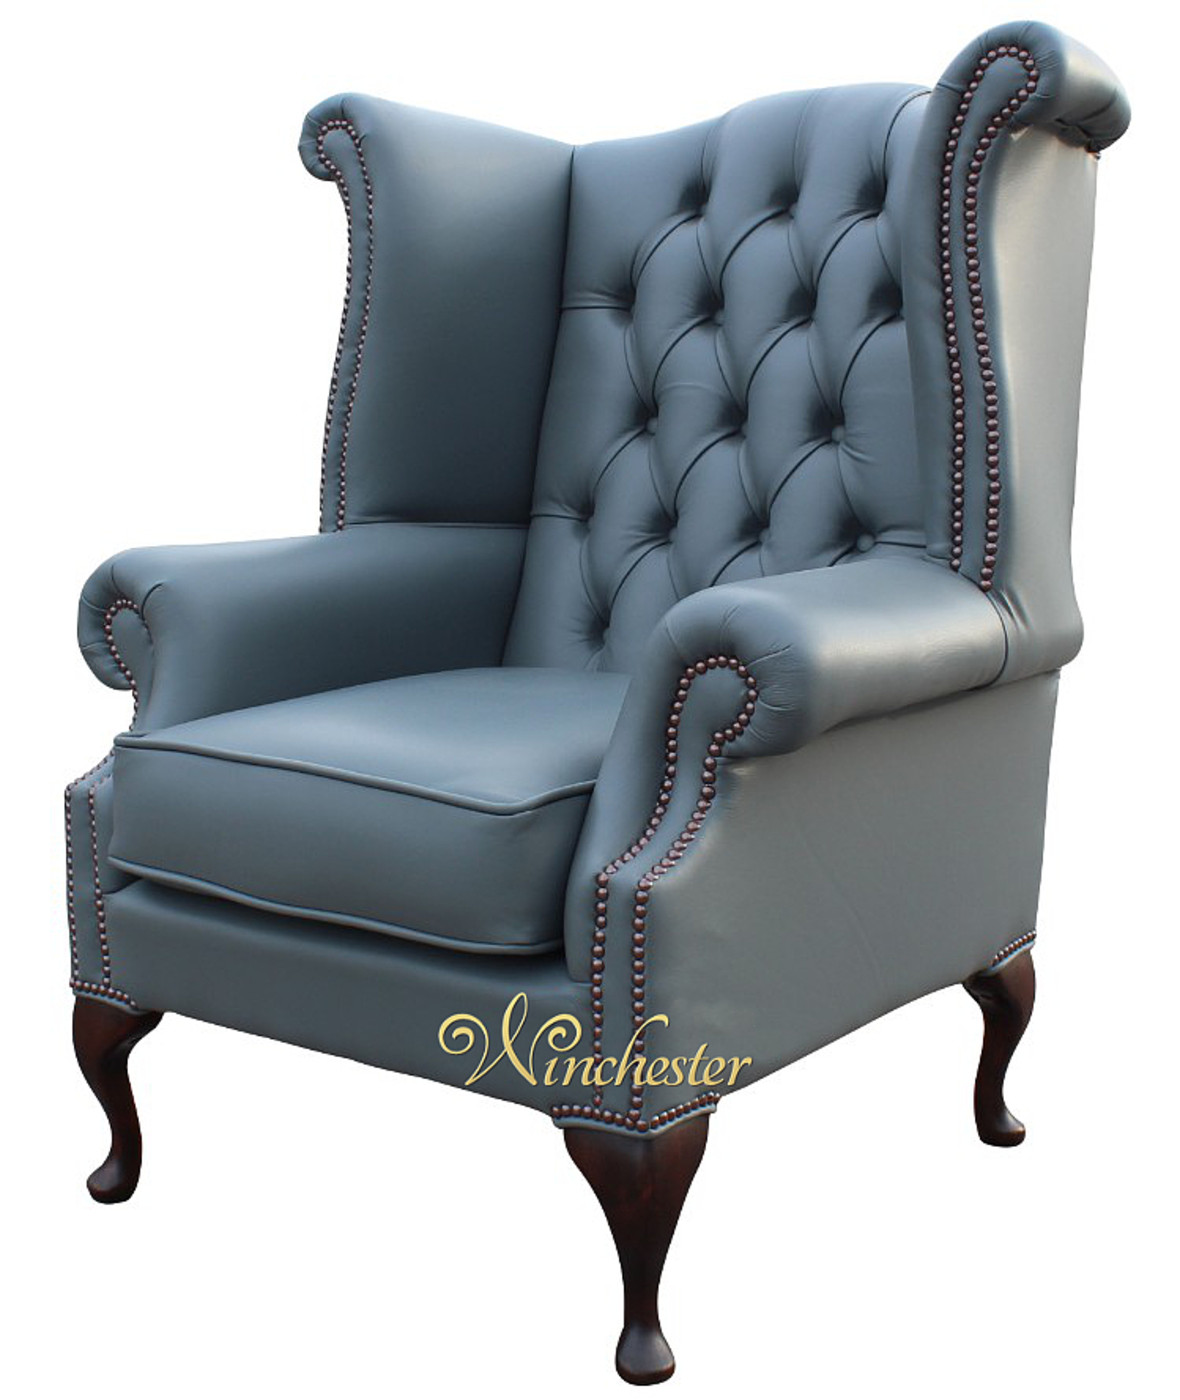 discount sofas online washable sofa covers chesterfield queen anne high back wing chair soft vele ...